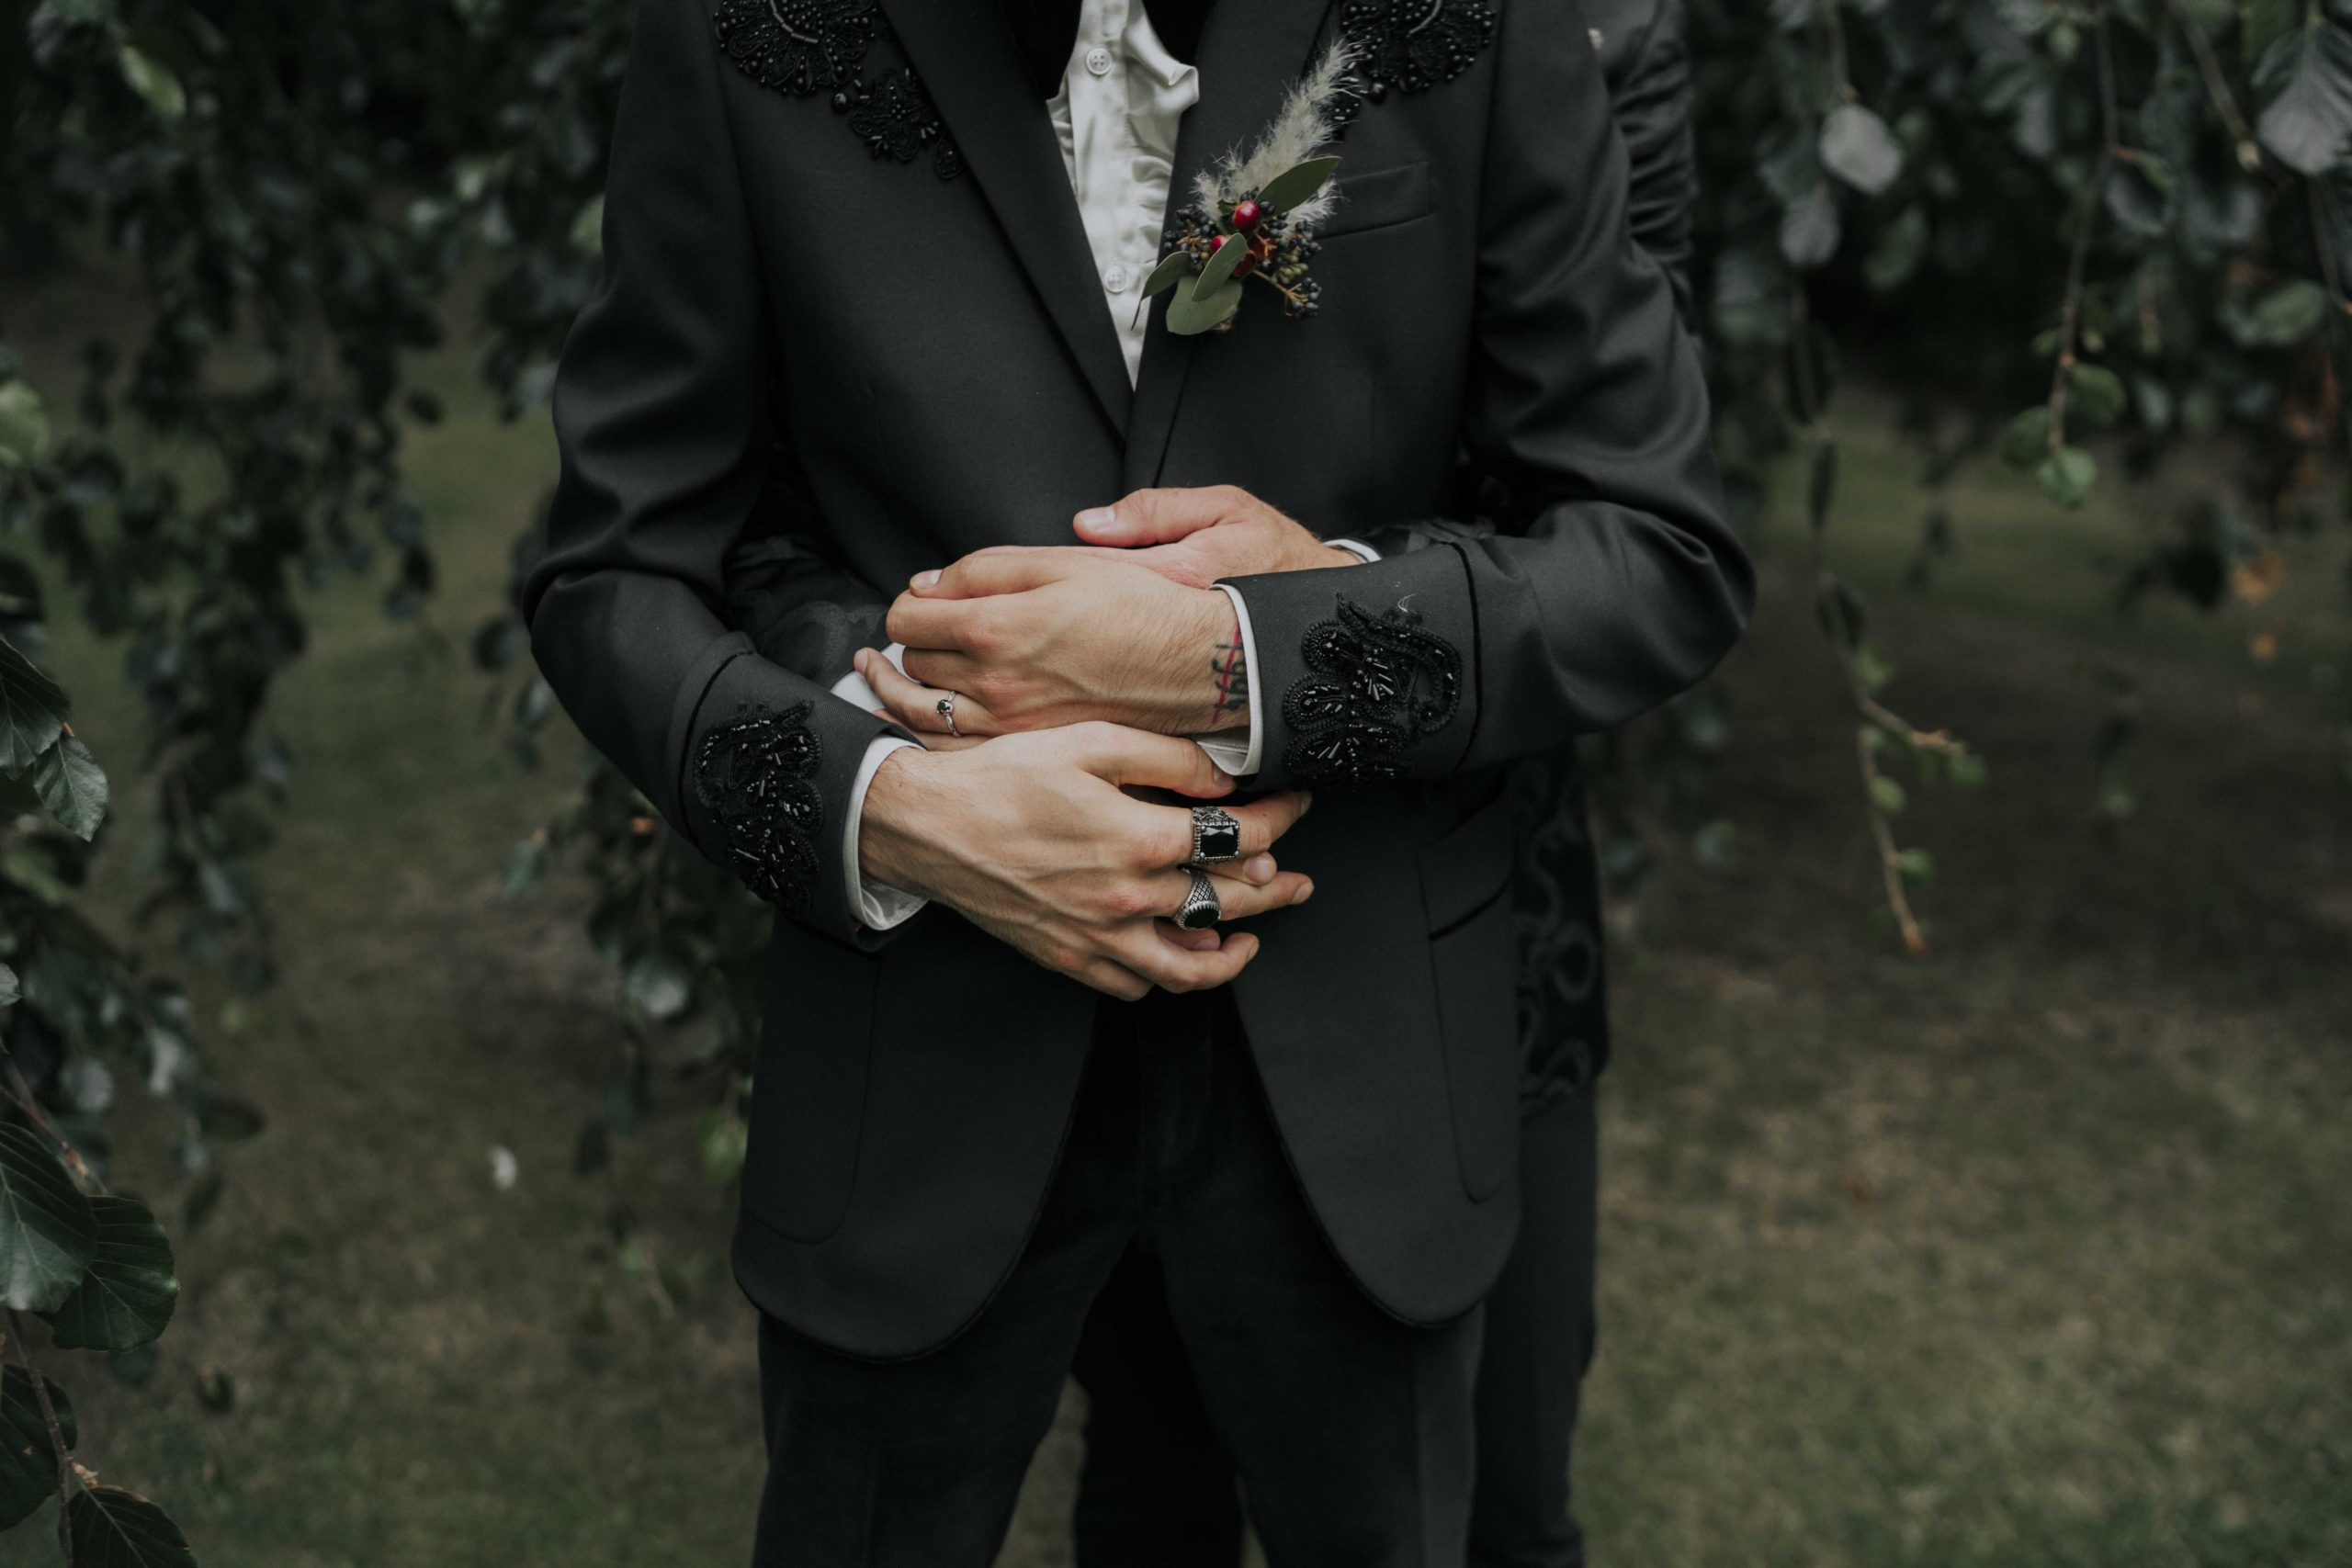 FOREVER_FANNY_MYARD_PHOTOGRAPHY_LK_MARIAGE-546-1